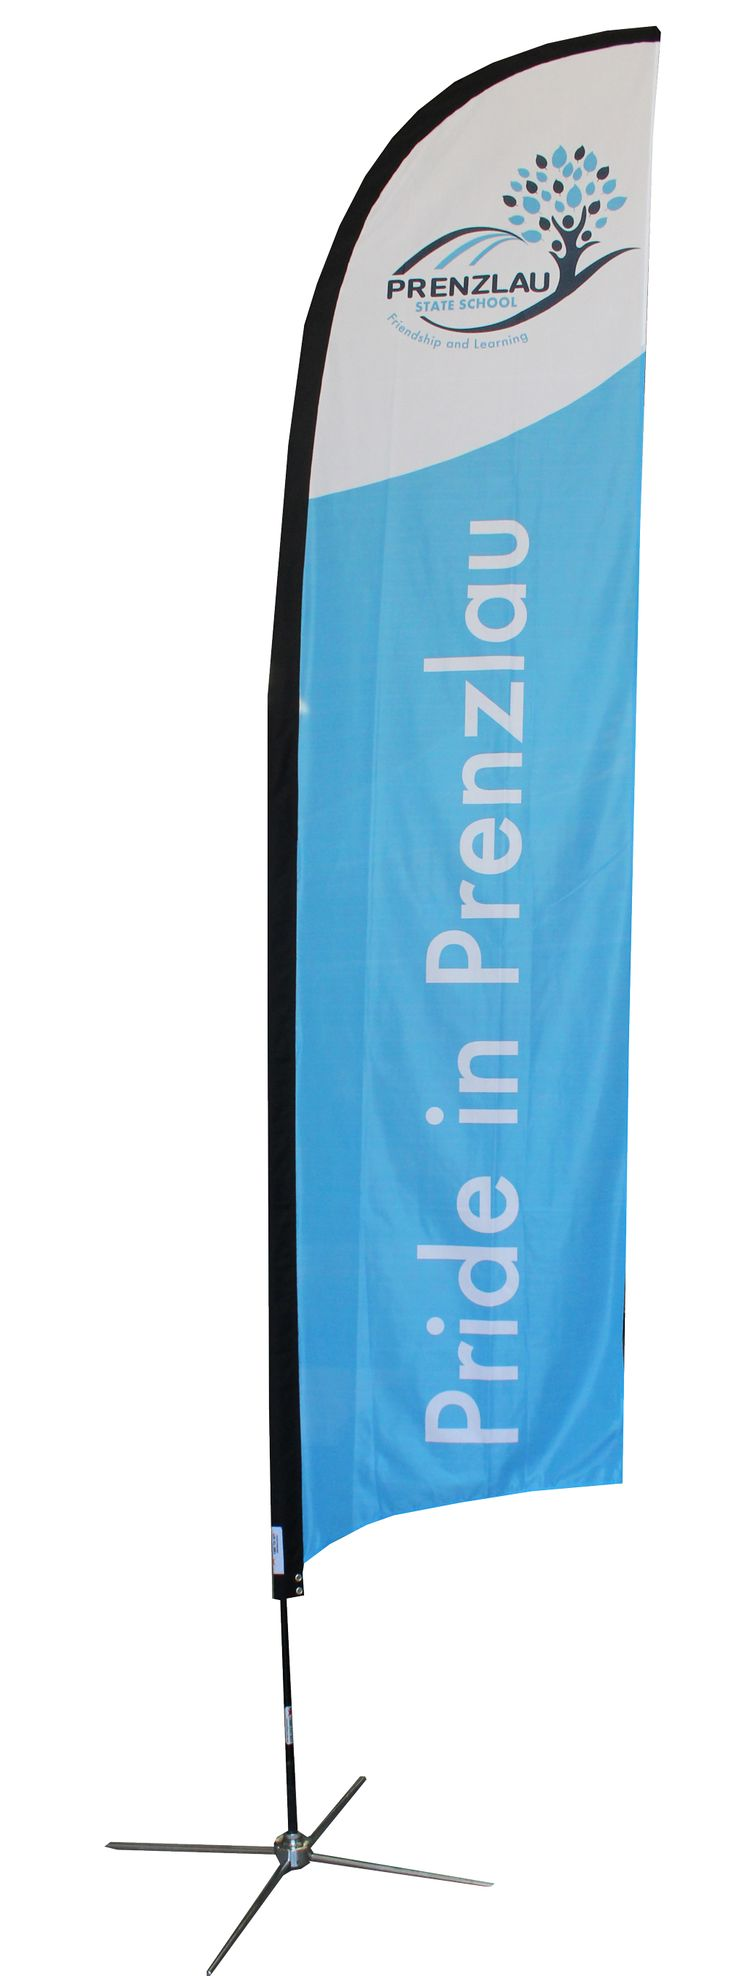 A magnified view of Prenzlau State School's awesome flag banner by Star Outdoor…